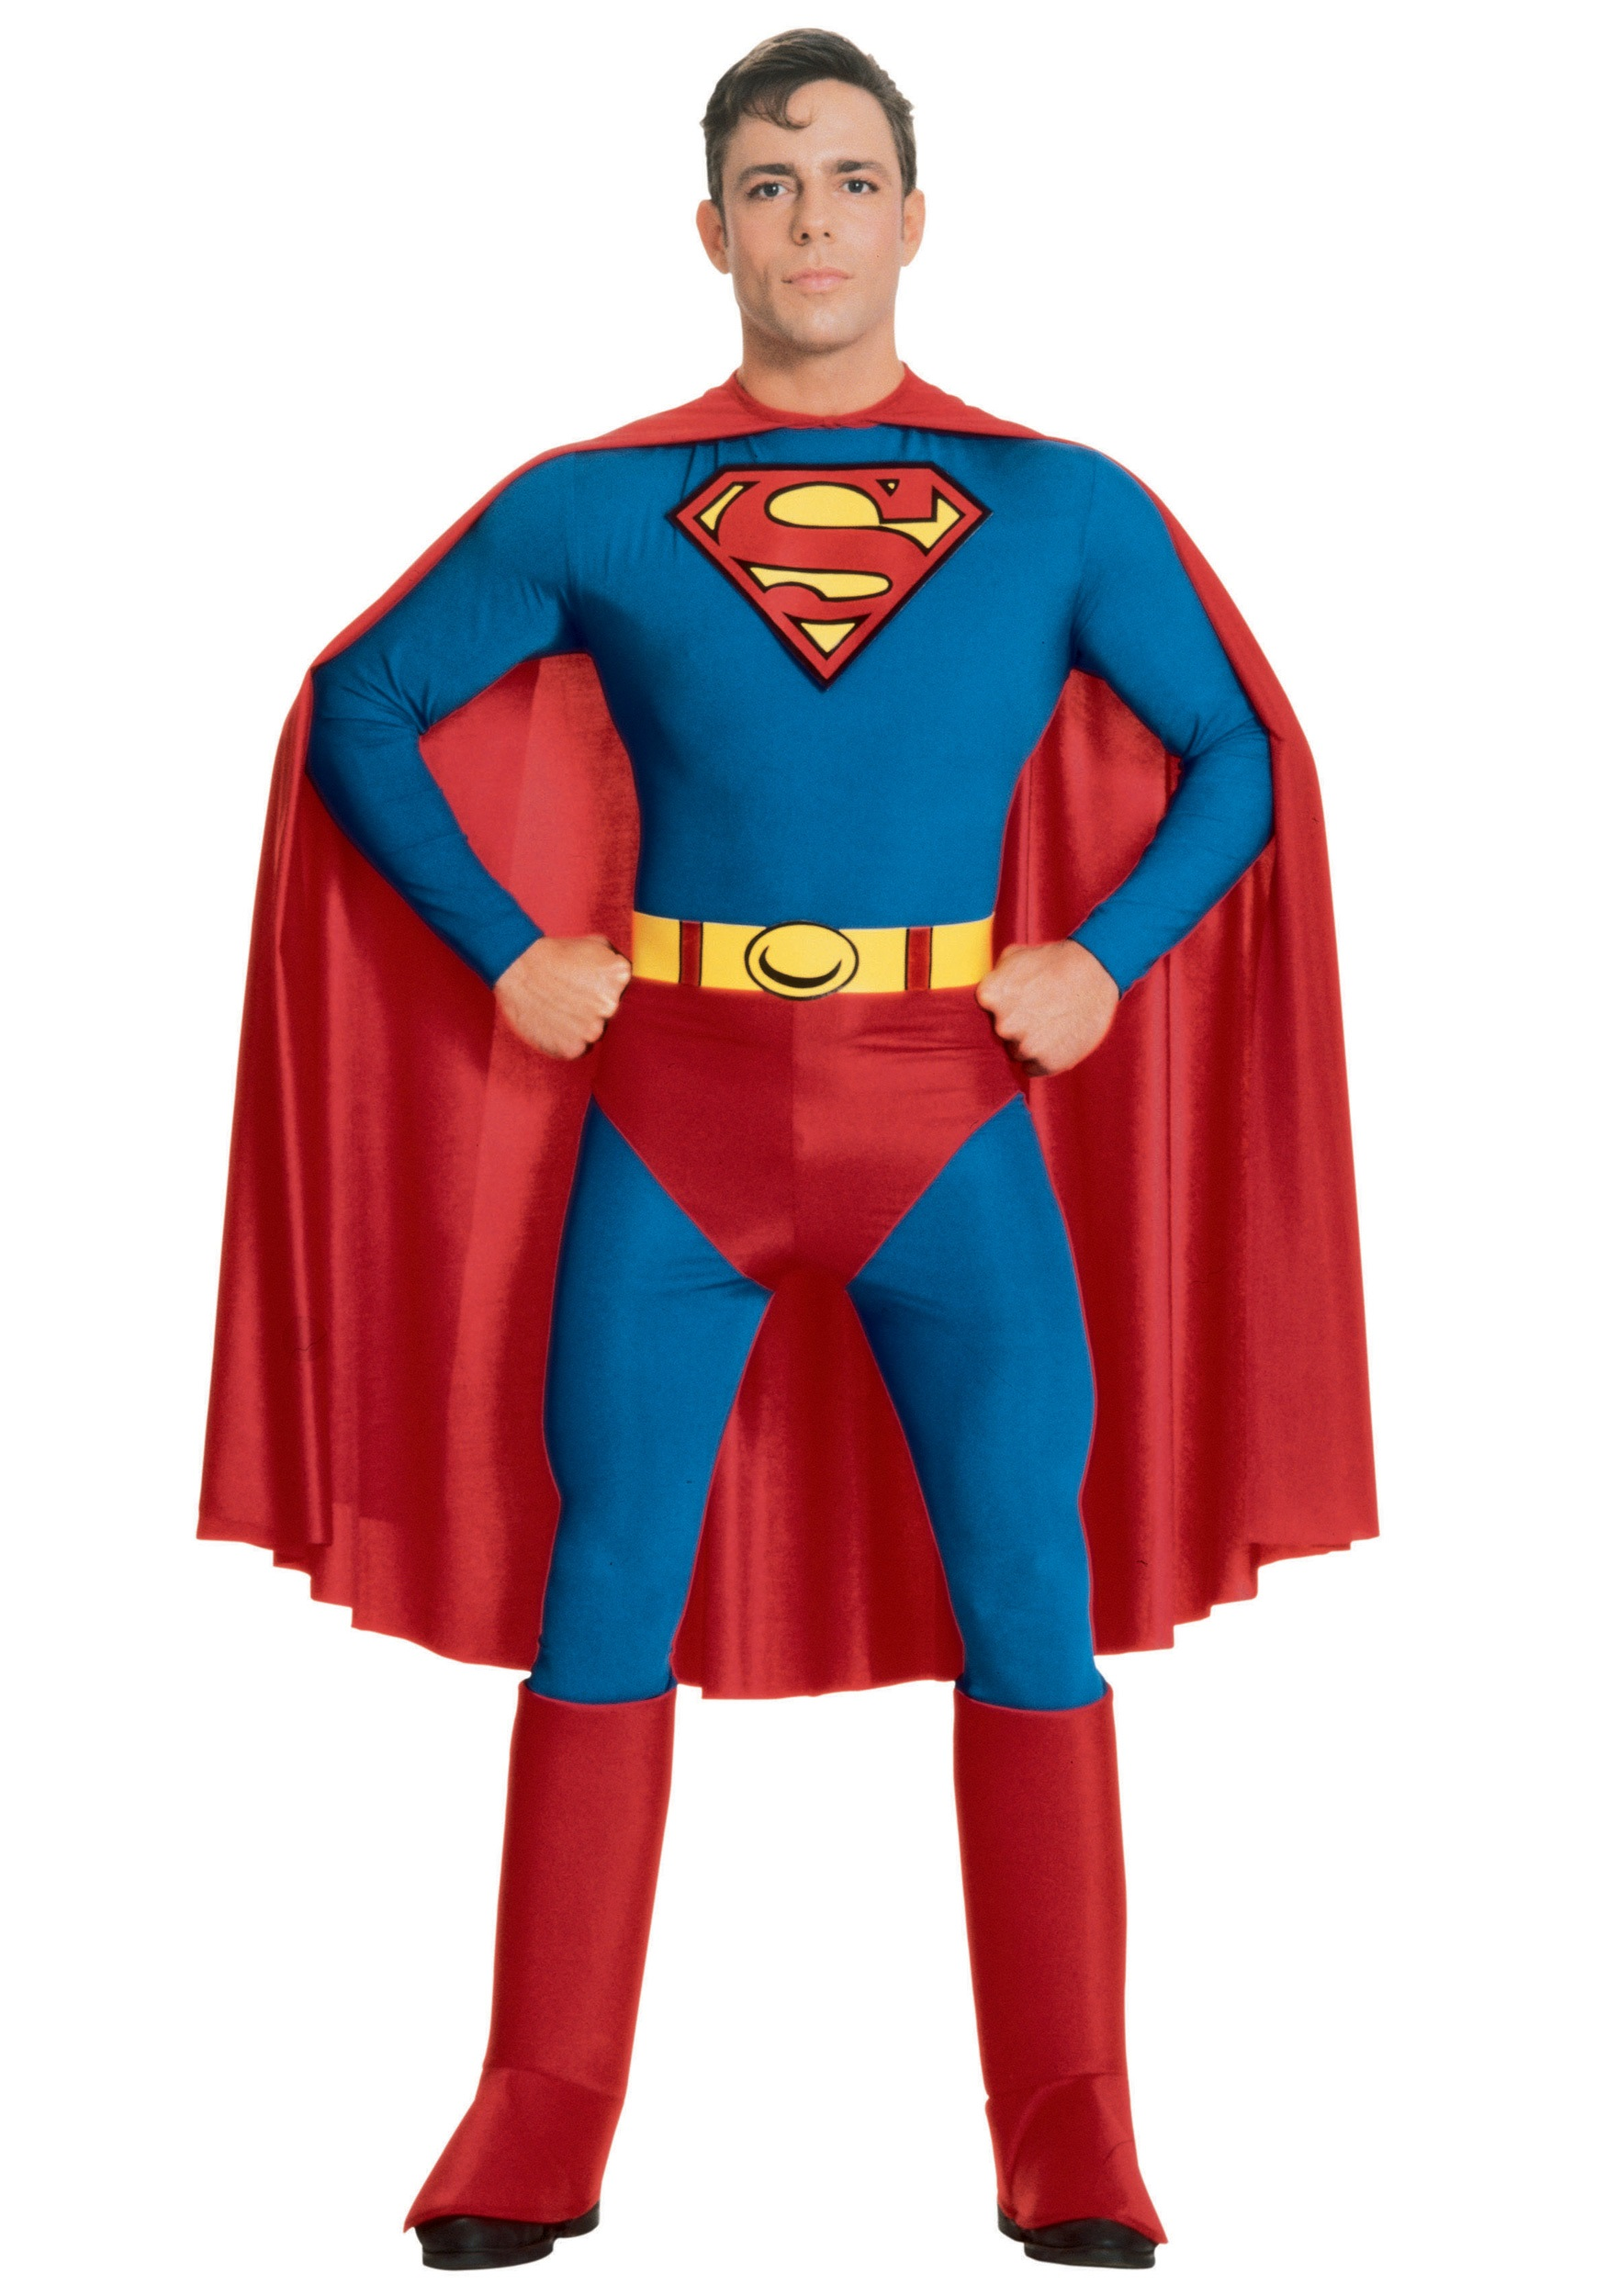 This Adult Deluxe Superman Cape features a classic look for the DC superhero. Pair it with your costume and you'l be feeling pretty super. bookbestnj.cf bookbestnj.cf Gifts Gifts for Men Gifts for Women Gifts for Boys. Gifts for Girls NEW! Themes Clothing. FUN Wear FUN Suits Toys Home & Office.